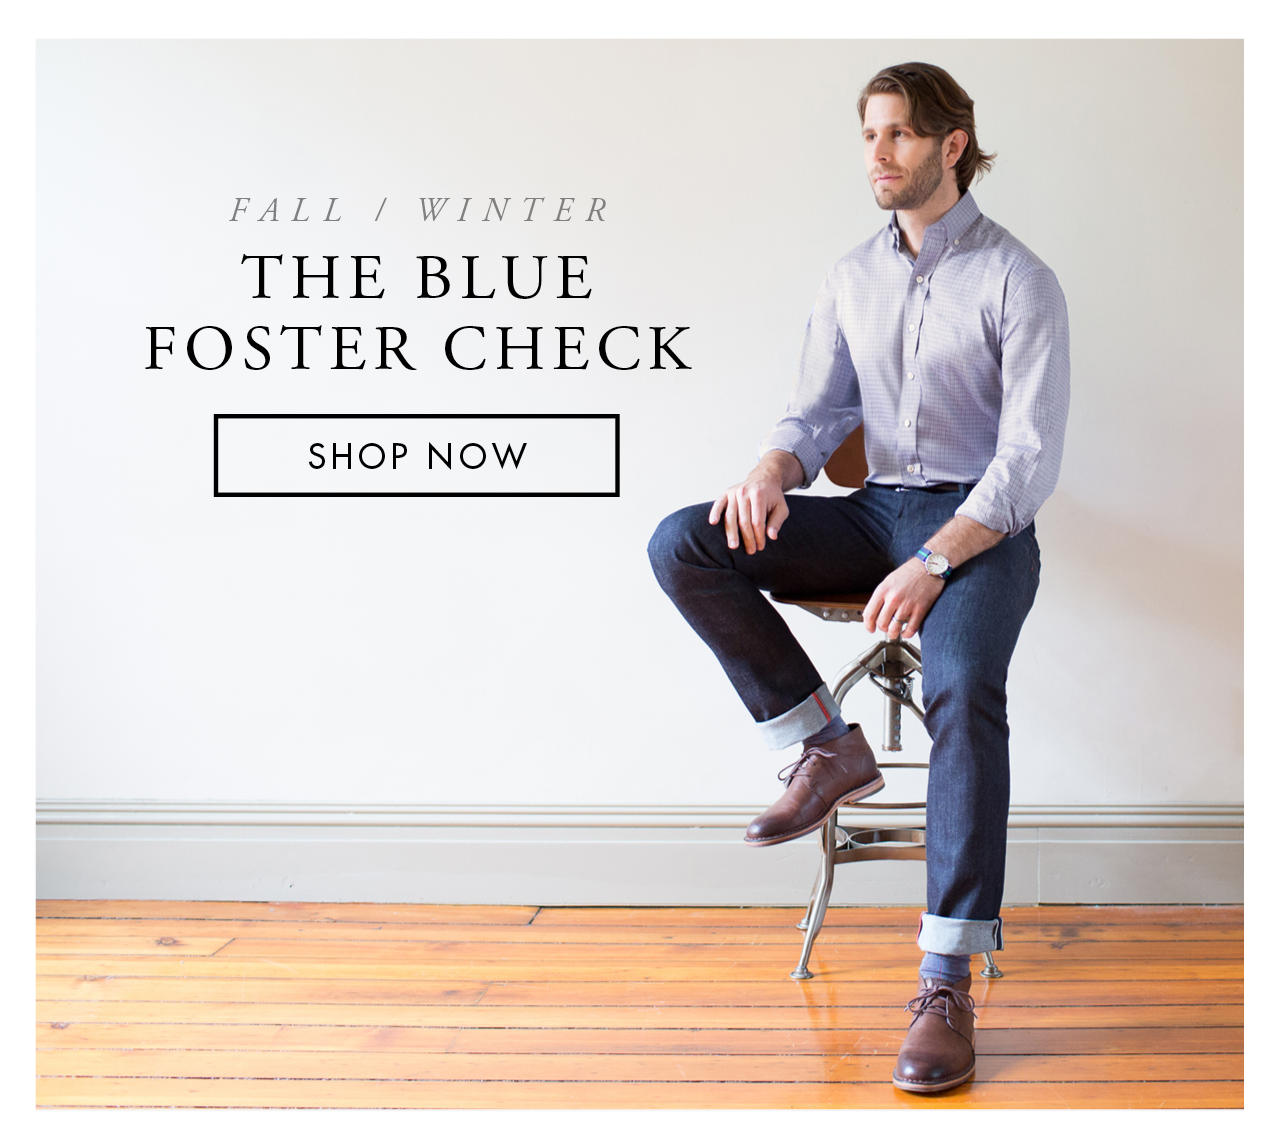 The Blue Foster Check